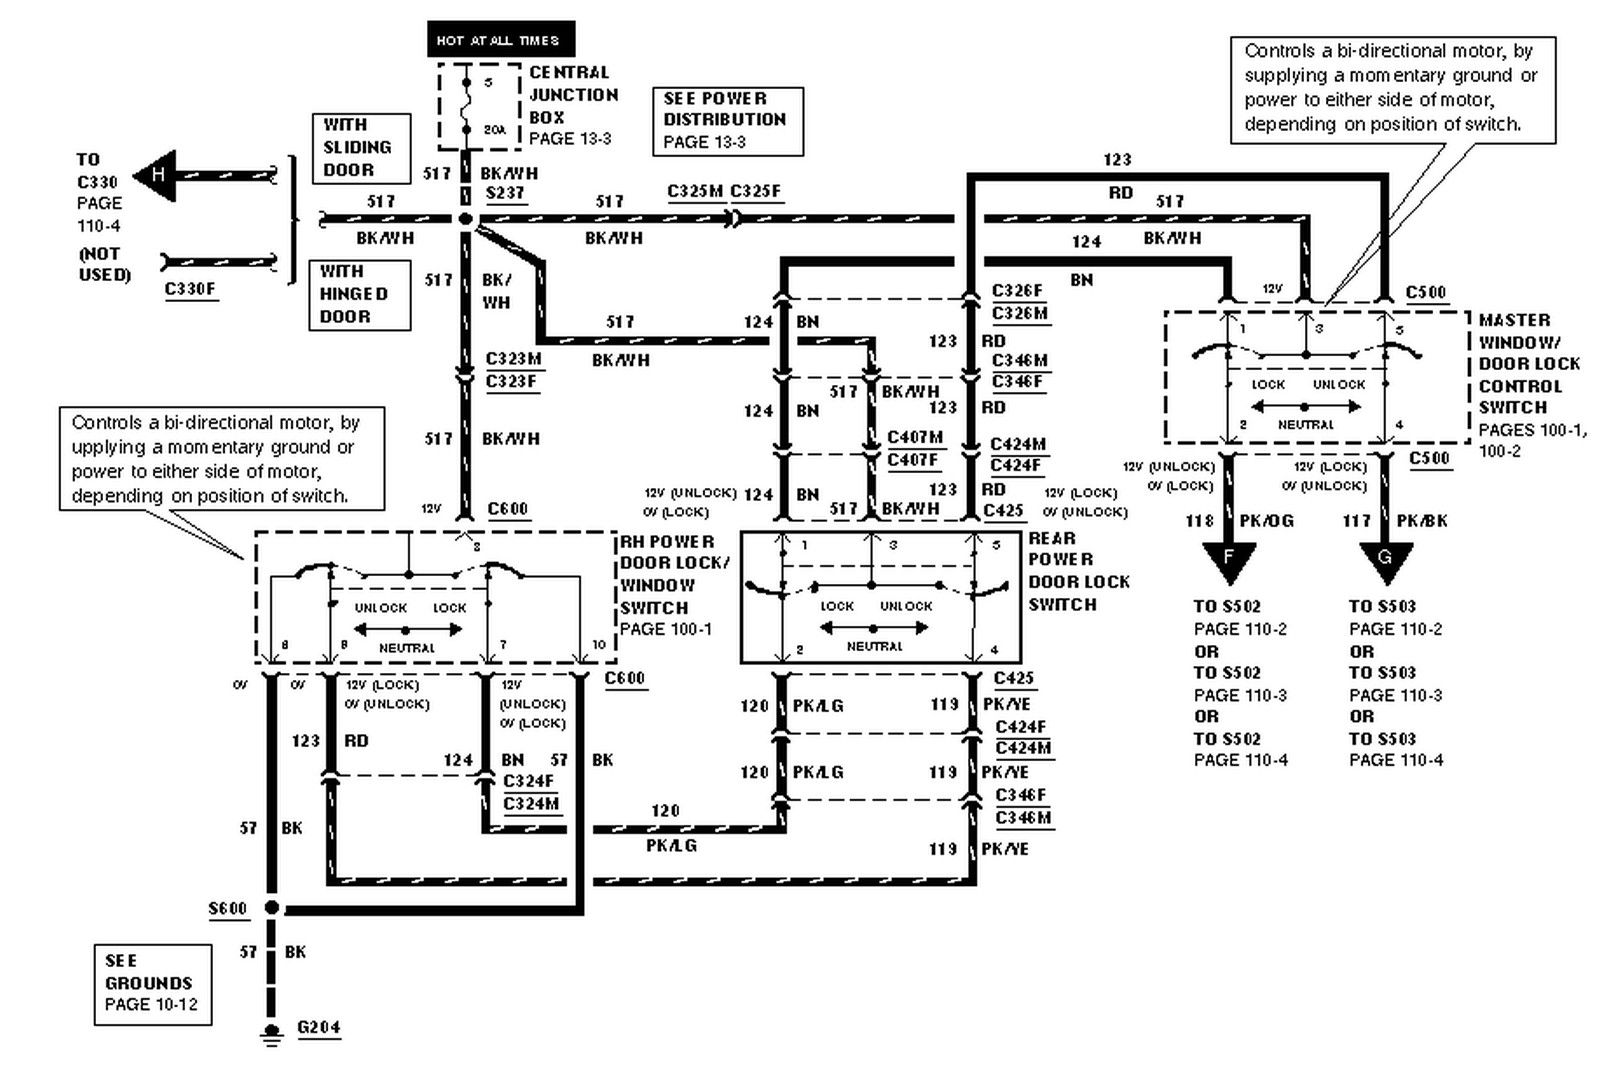 80 2010_11_05_235941_99_e_350_power_door_lock_wiring_diagram_e574233ae37af9677ff5fddb790386a28f9dd7ad 99 f150 wiring diagram 99 f150 stereo wiring diagram \u2022 wiring  at eliteediting.co